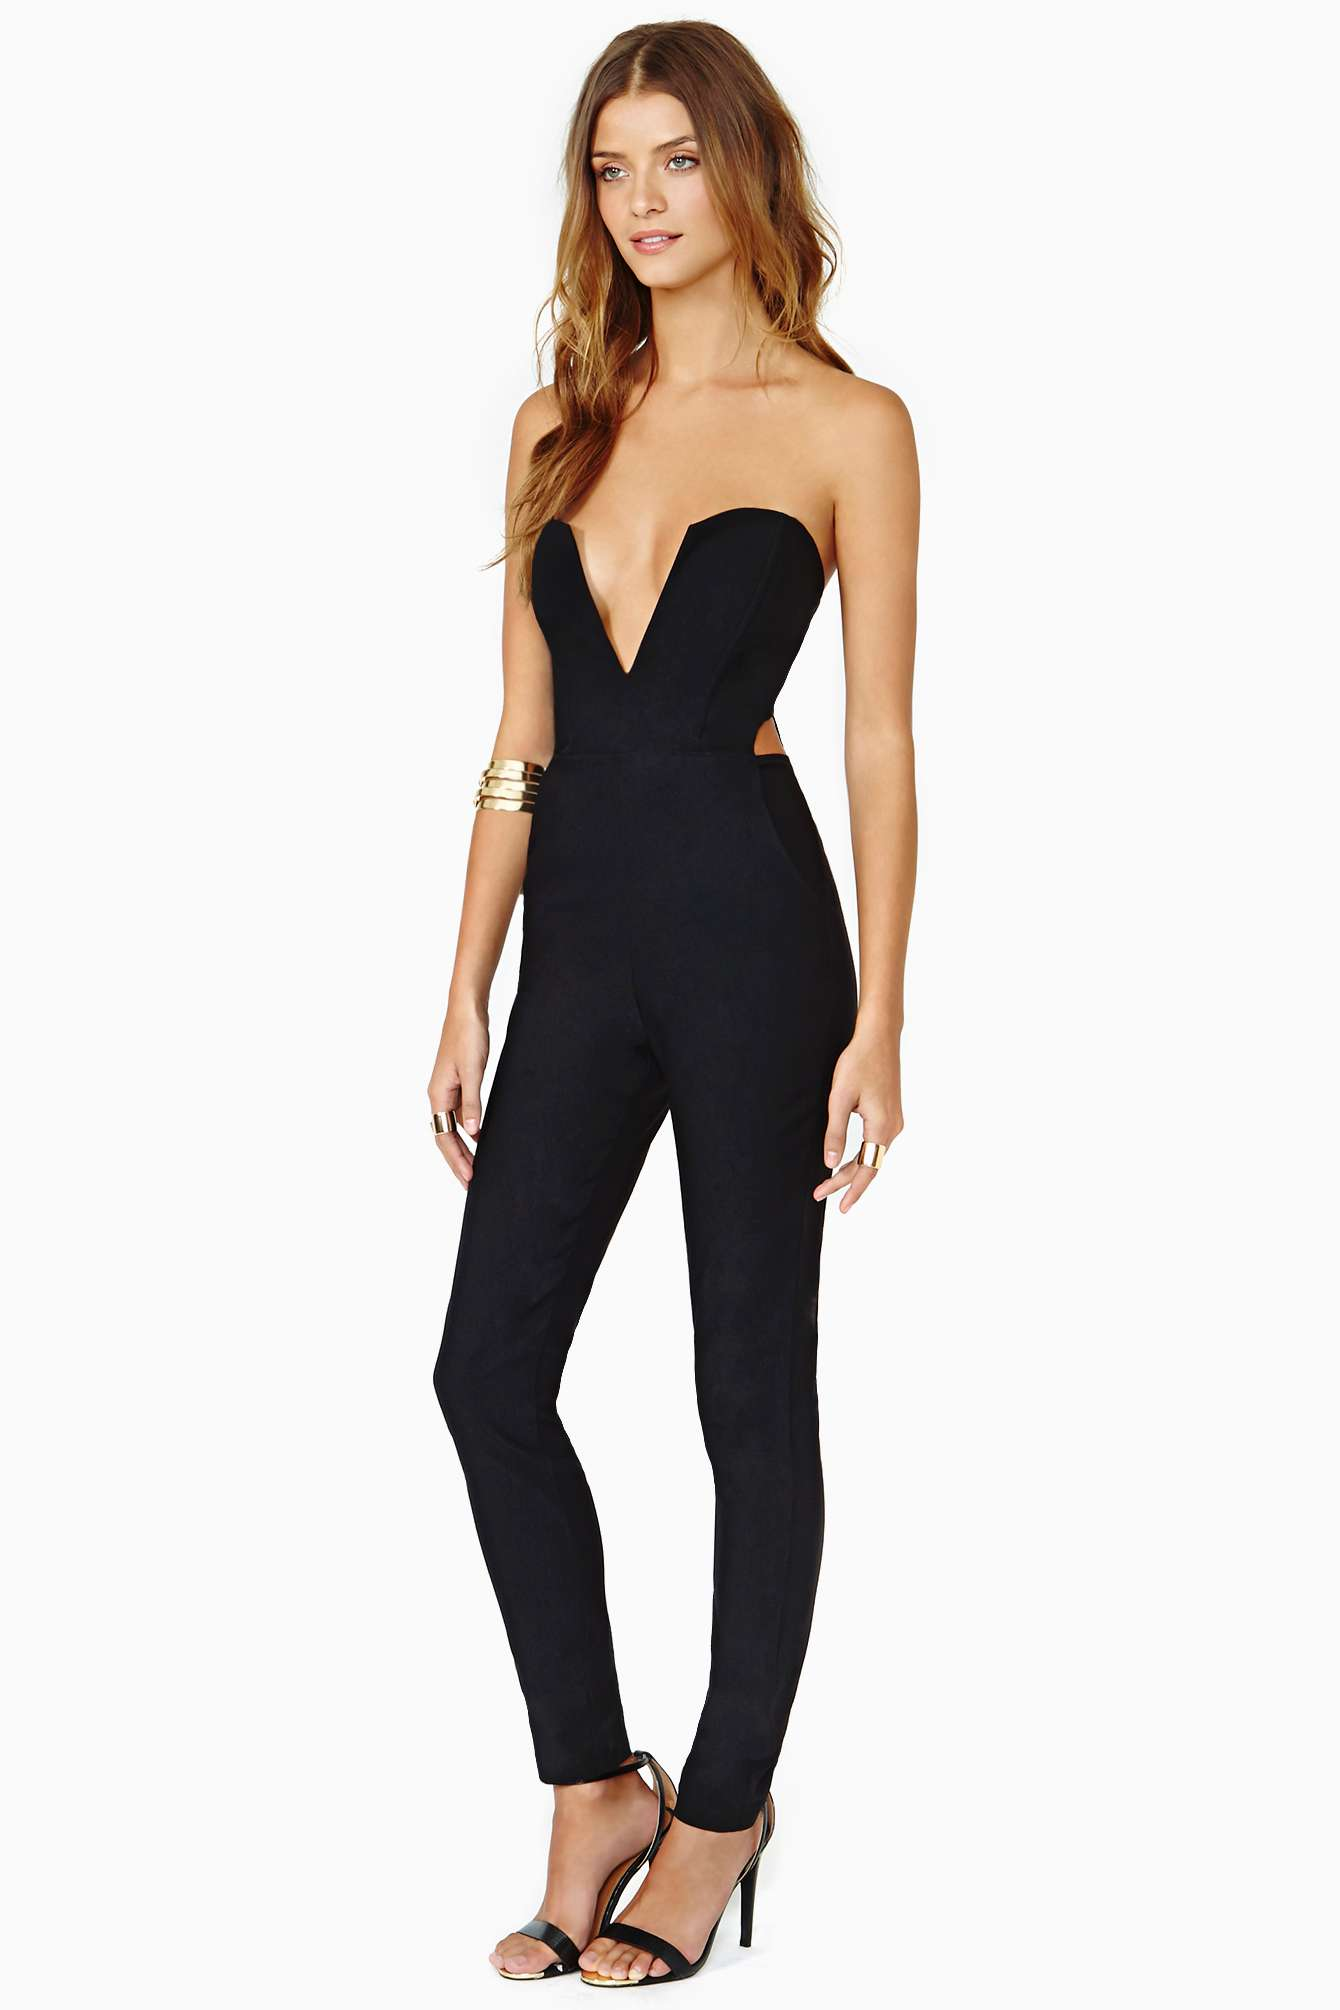 Lyst - Nasty Gal Midnight Run Jumpsuit In Black-9415